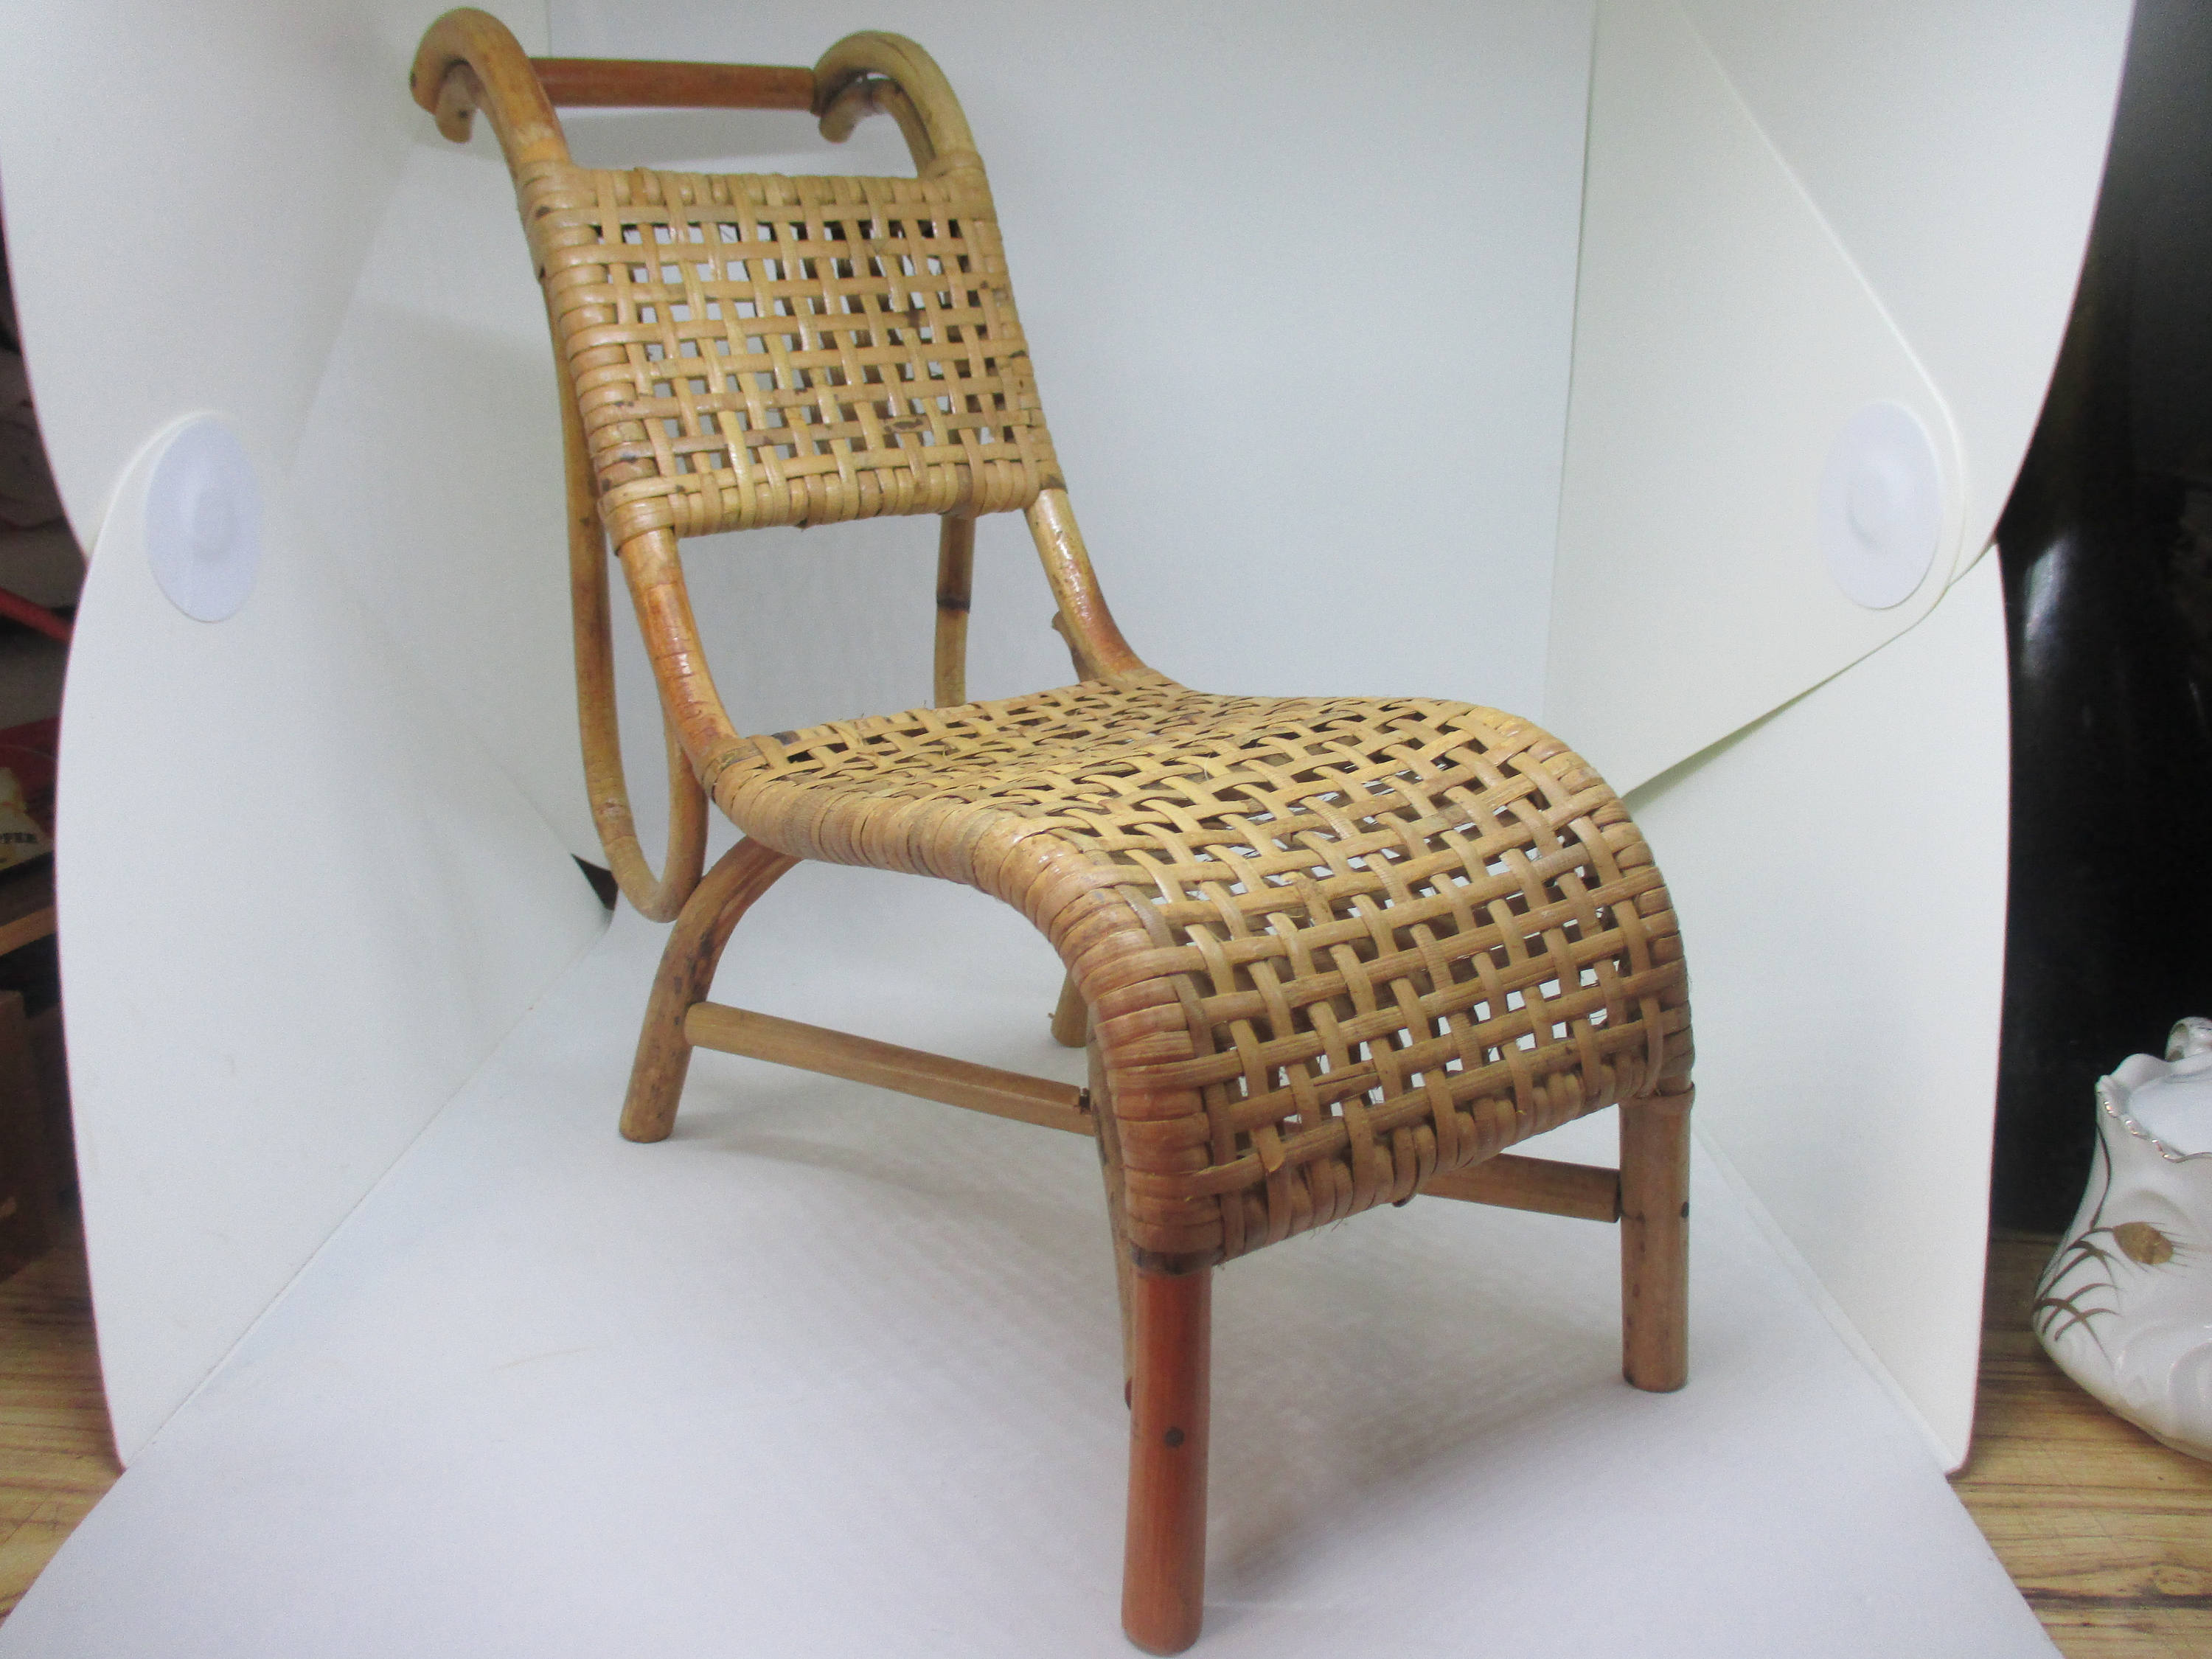 bamboo rattan chair stairs lift antique victorian wicker doll bear